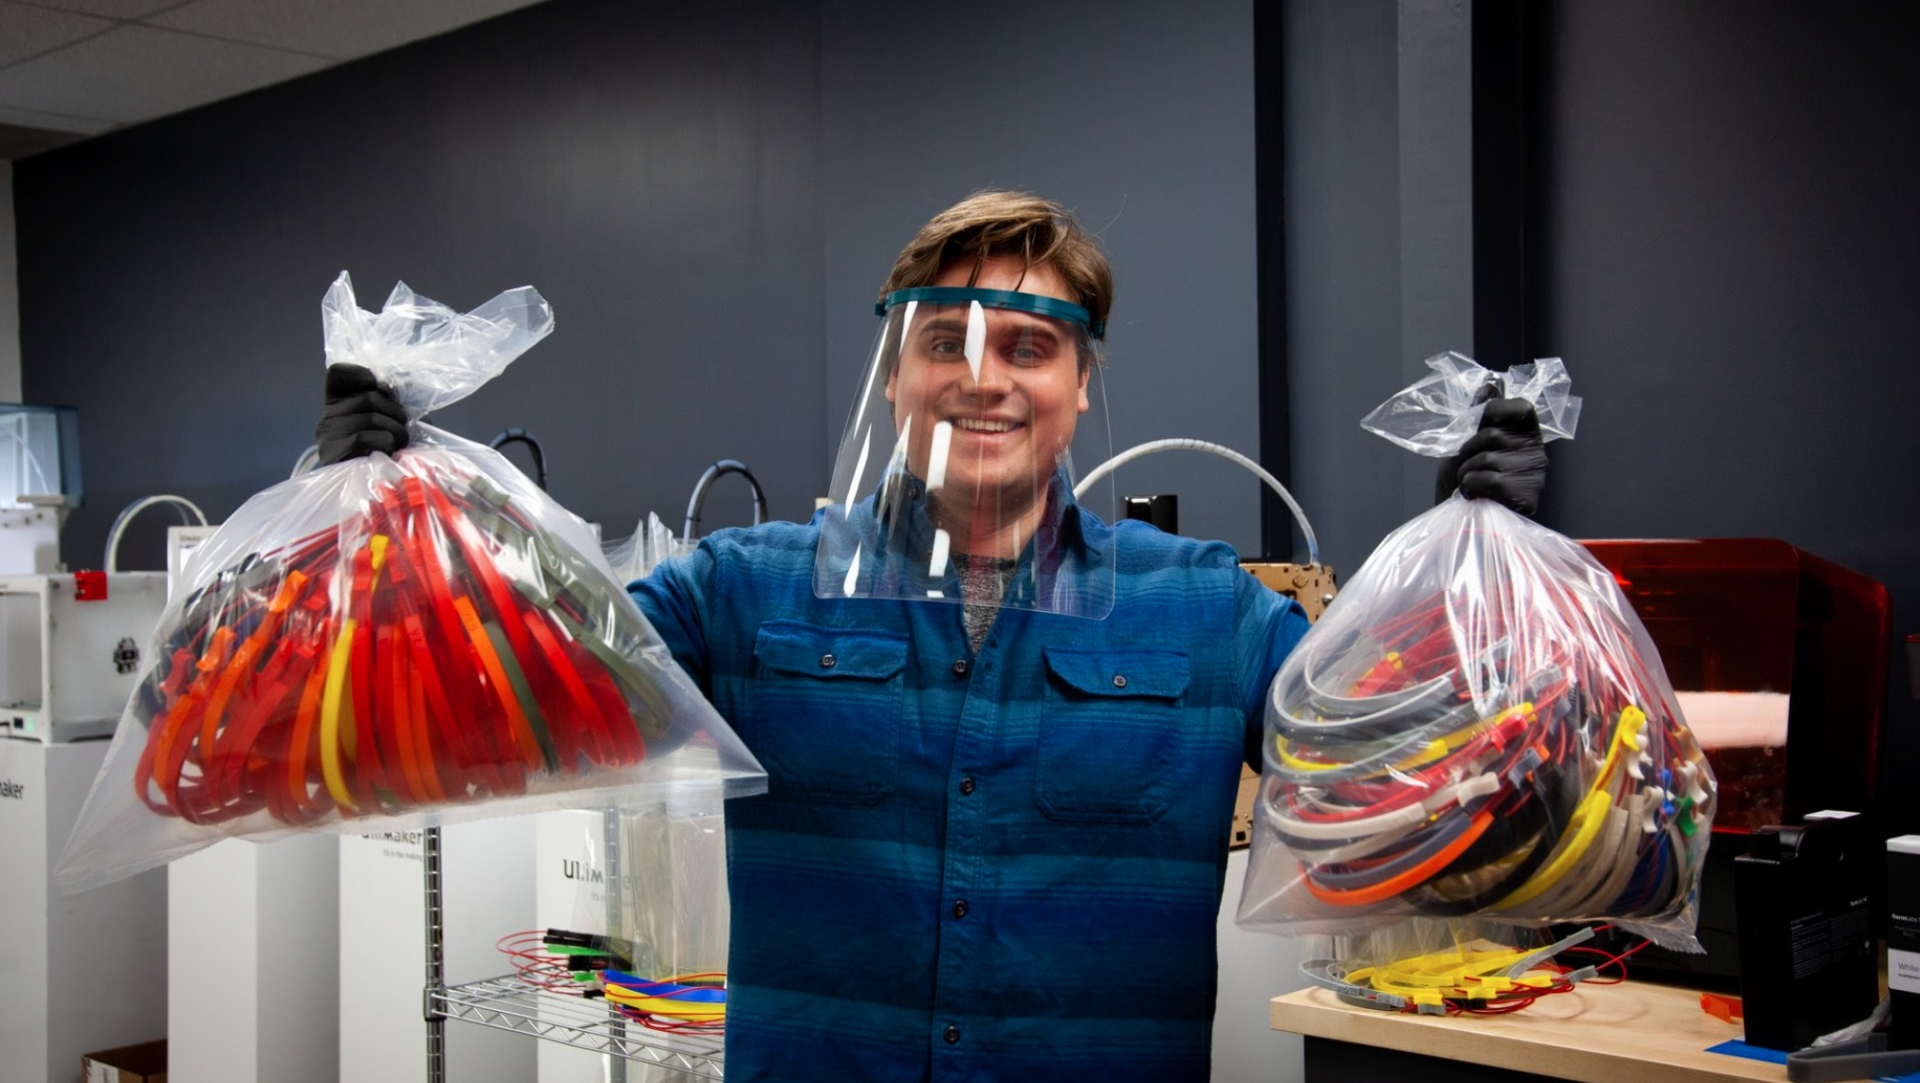 Librarians repurpose 3D printers to create free PPE for frontline workers